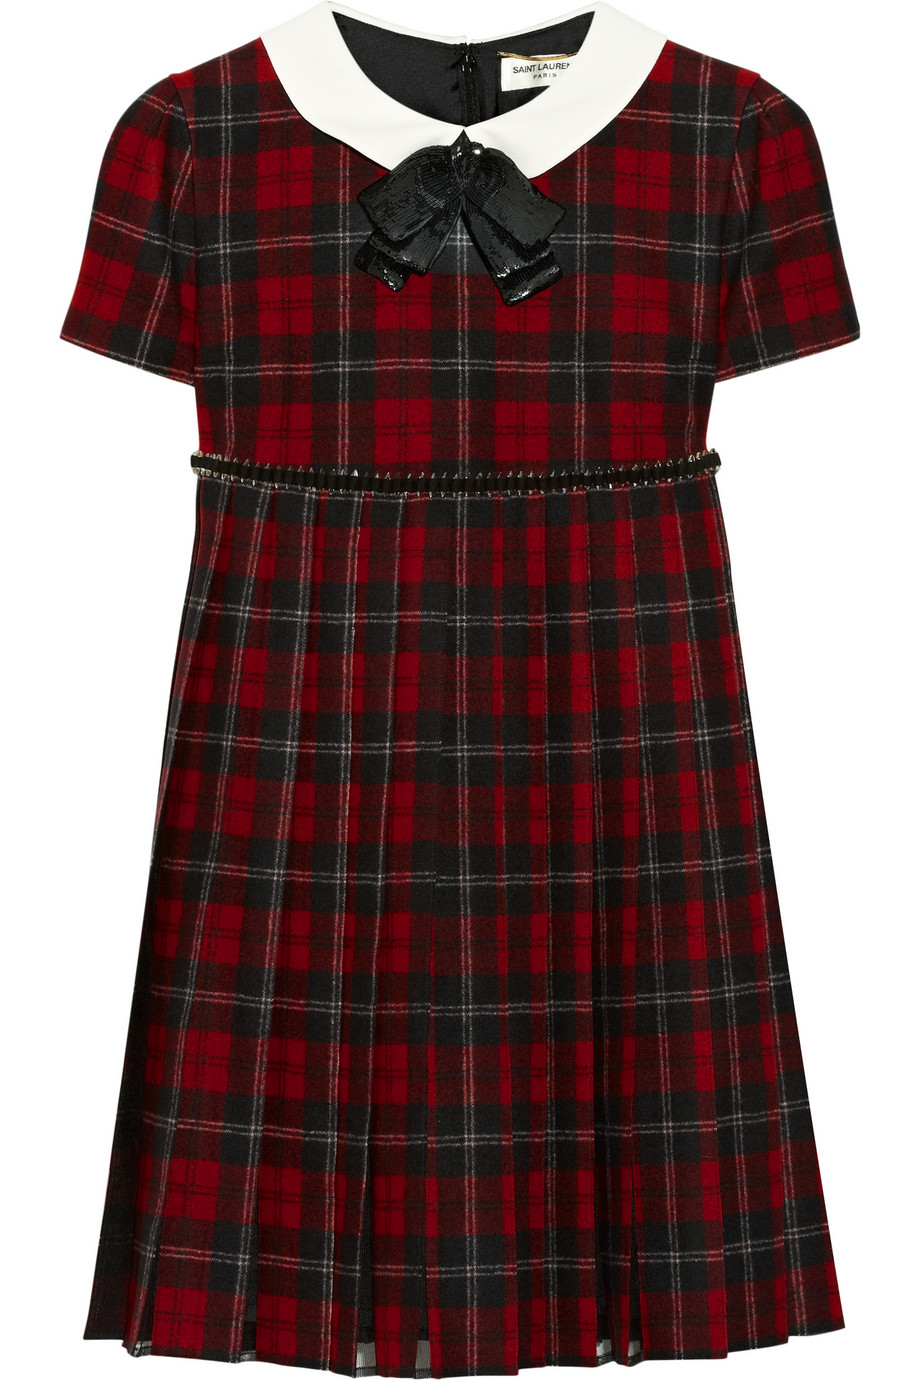 Lyst Saint Laurent Embellished Plaid Wool Dress In Red